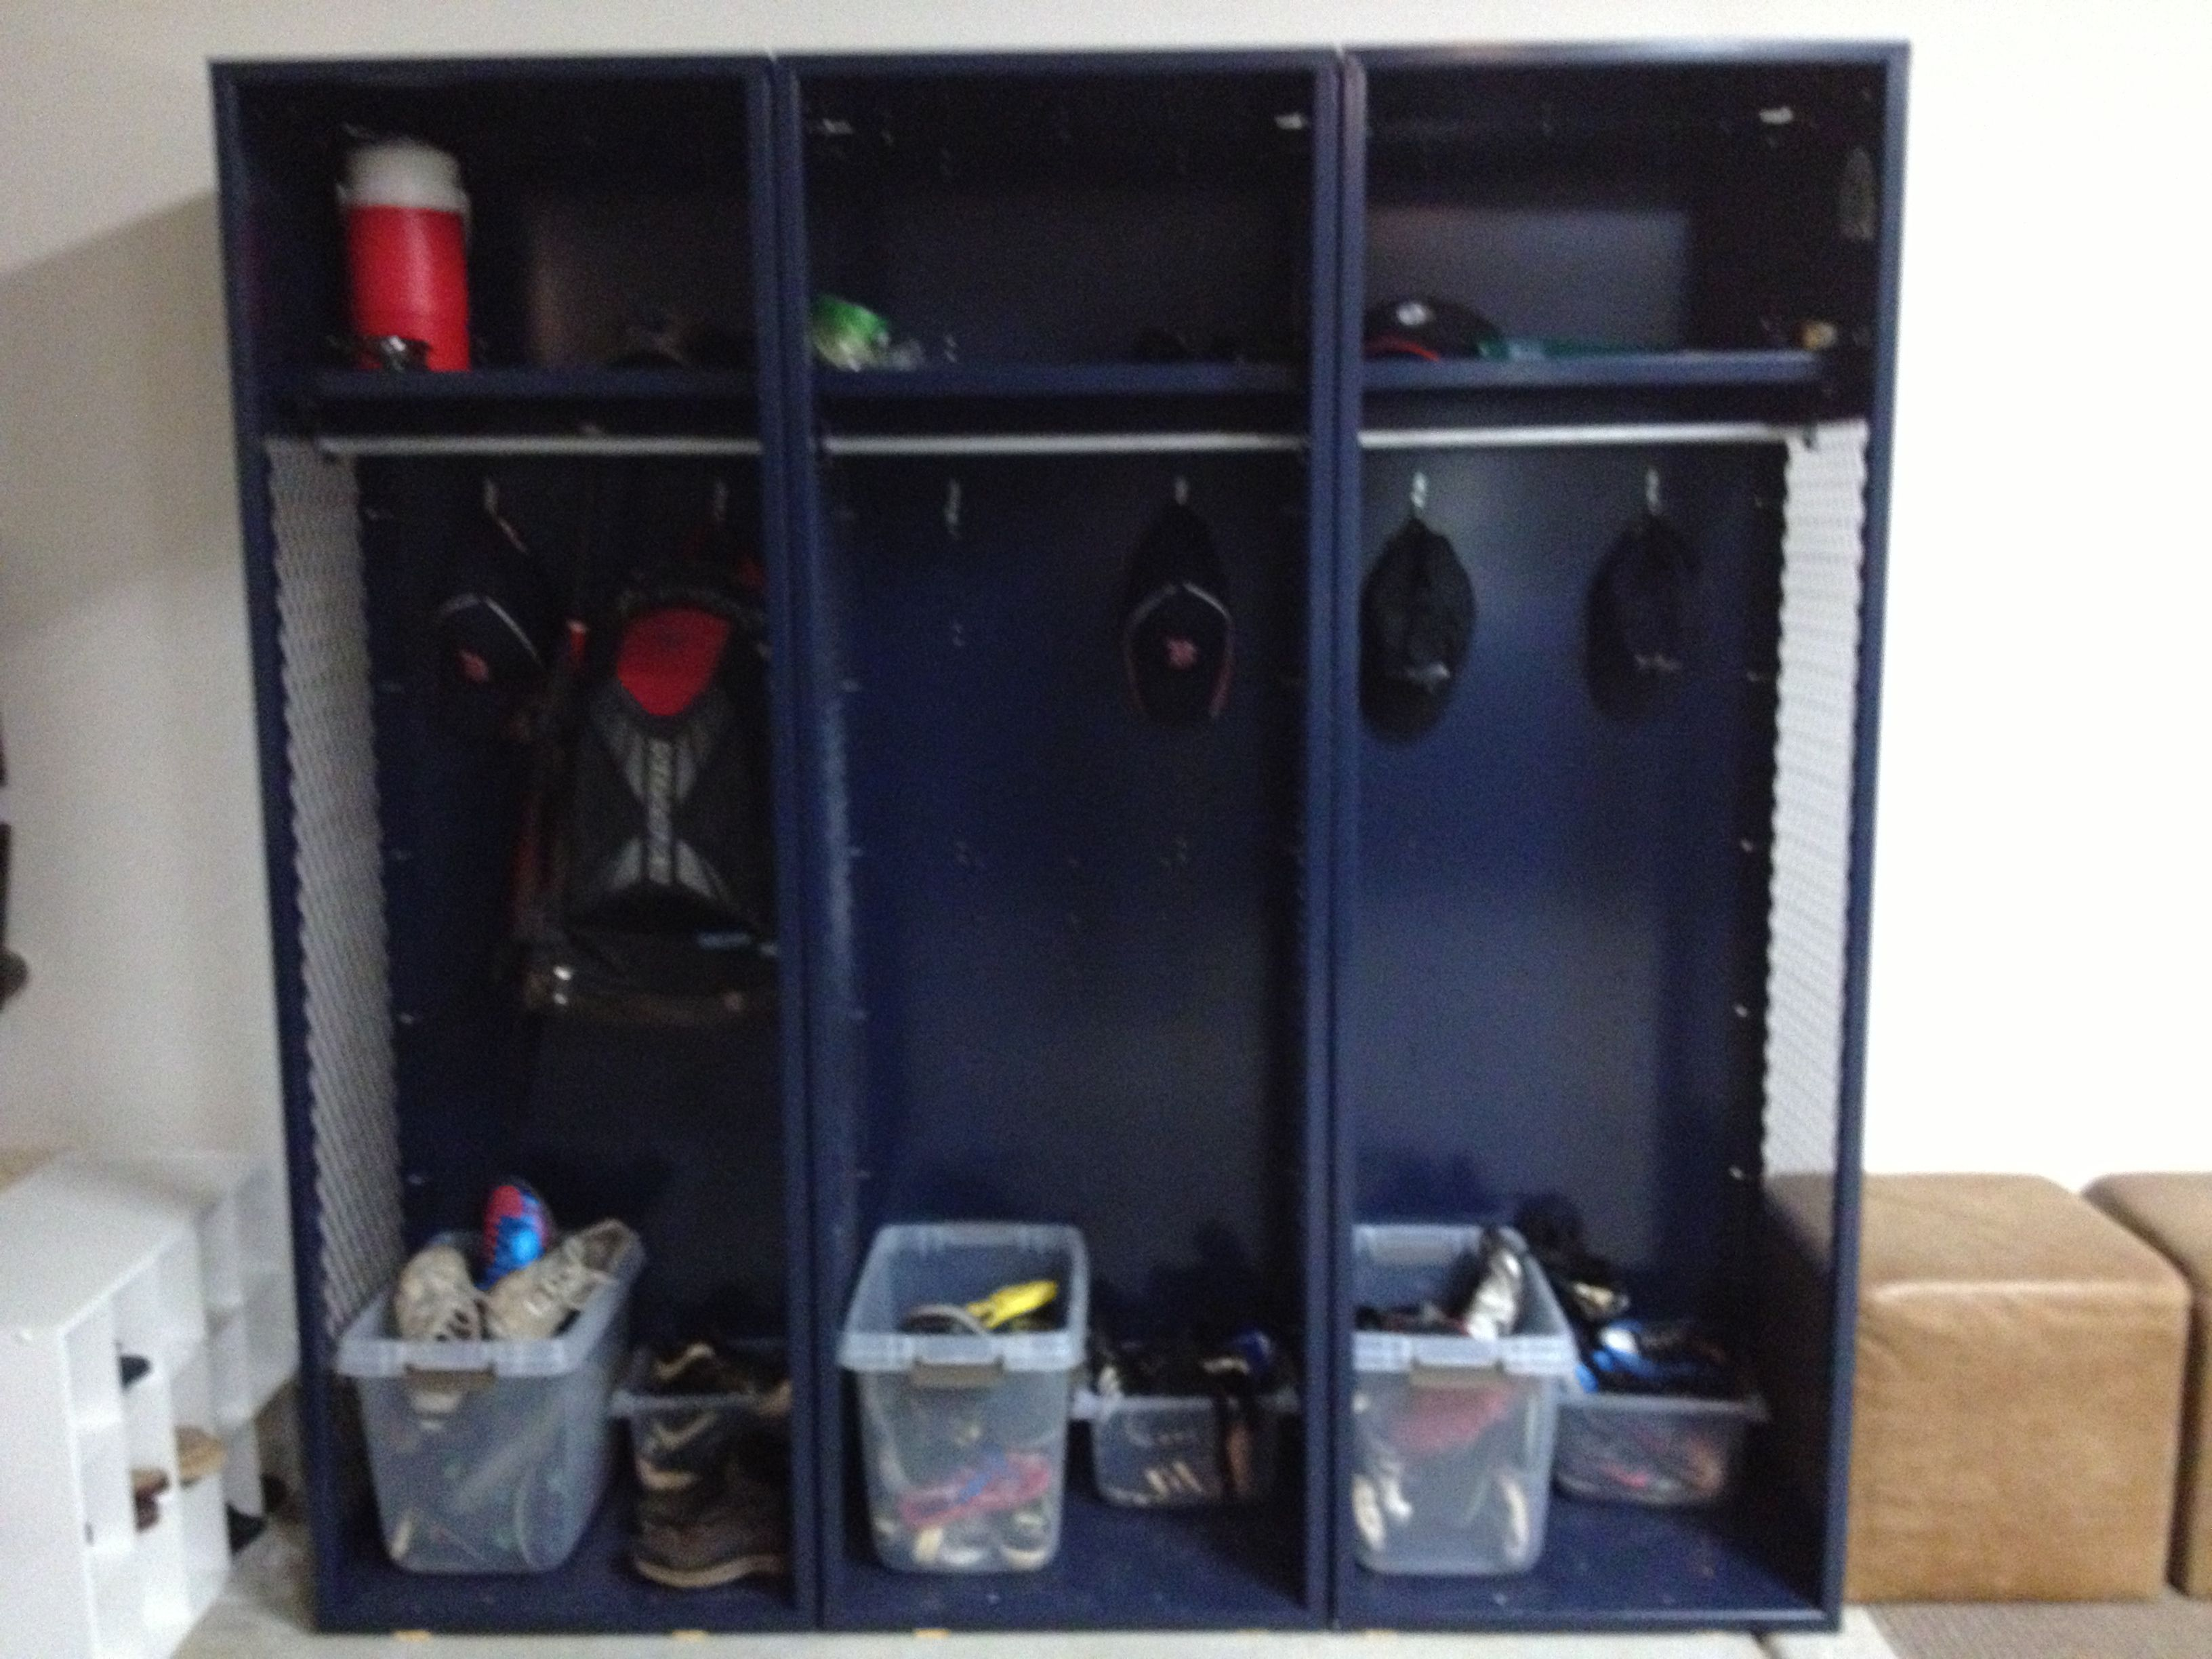 Heavy Duty Storage Lockers For My Boys.we Ordered Them In Blue (for Our  Favorite Sports Teams). Set Them Up In The Garage For All Their Sports  Equipment And ...